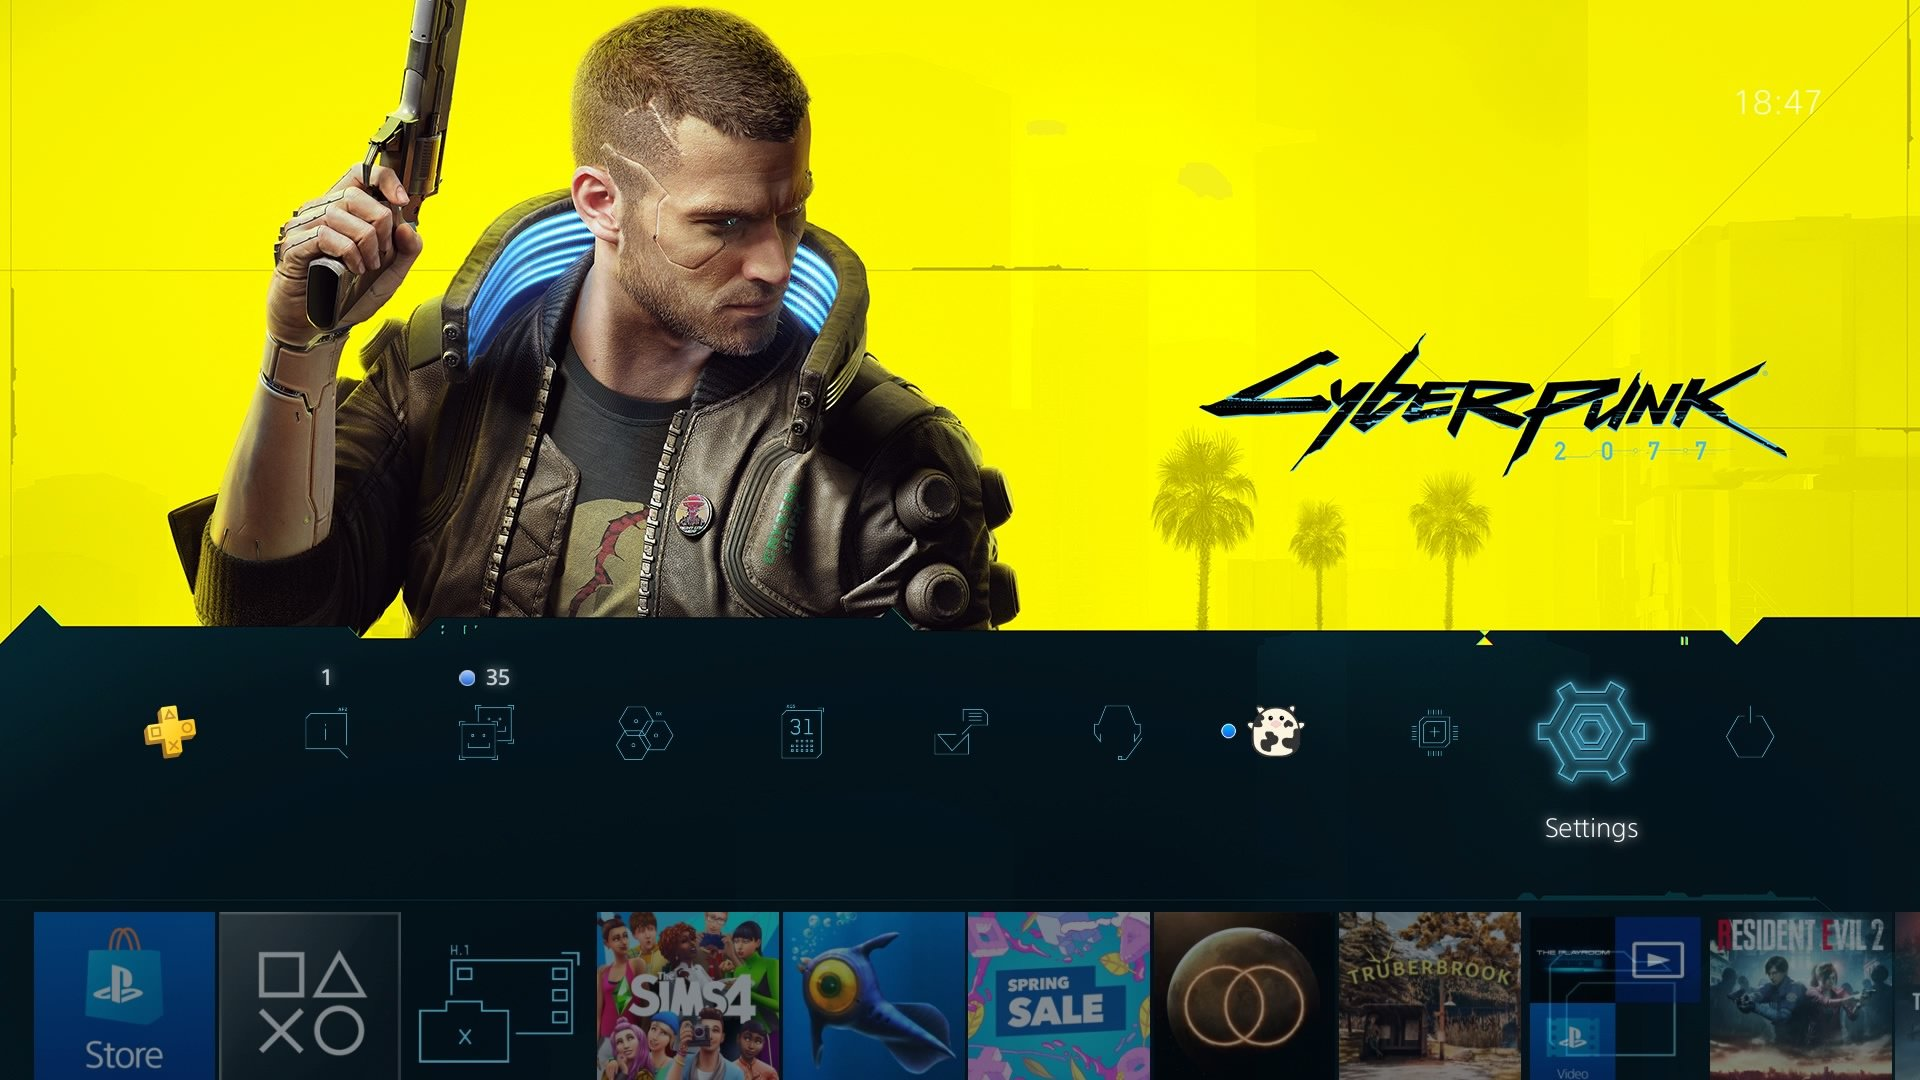 The Best Free Ps4 Festive Themes Download  JPG